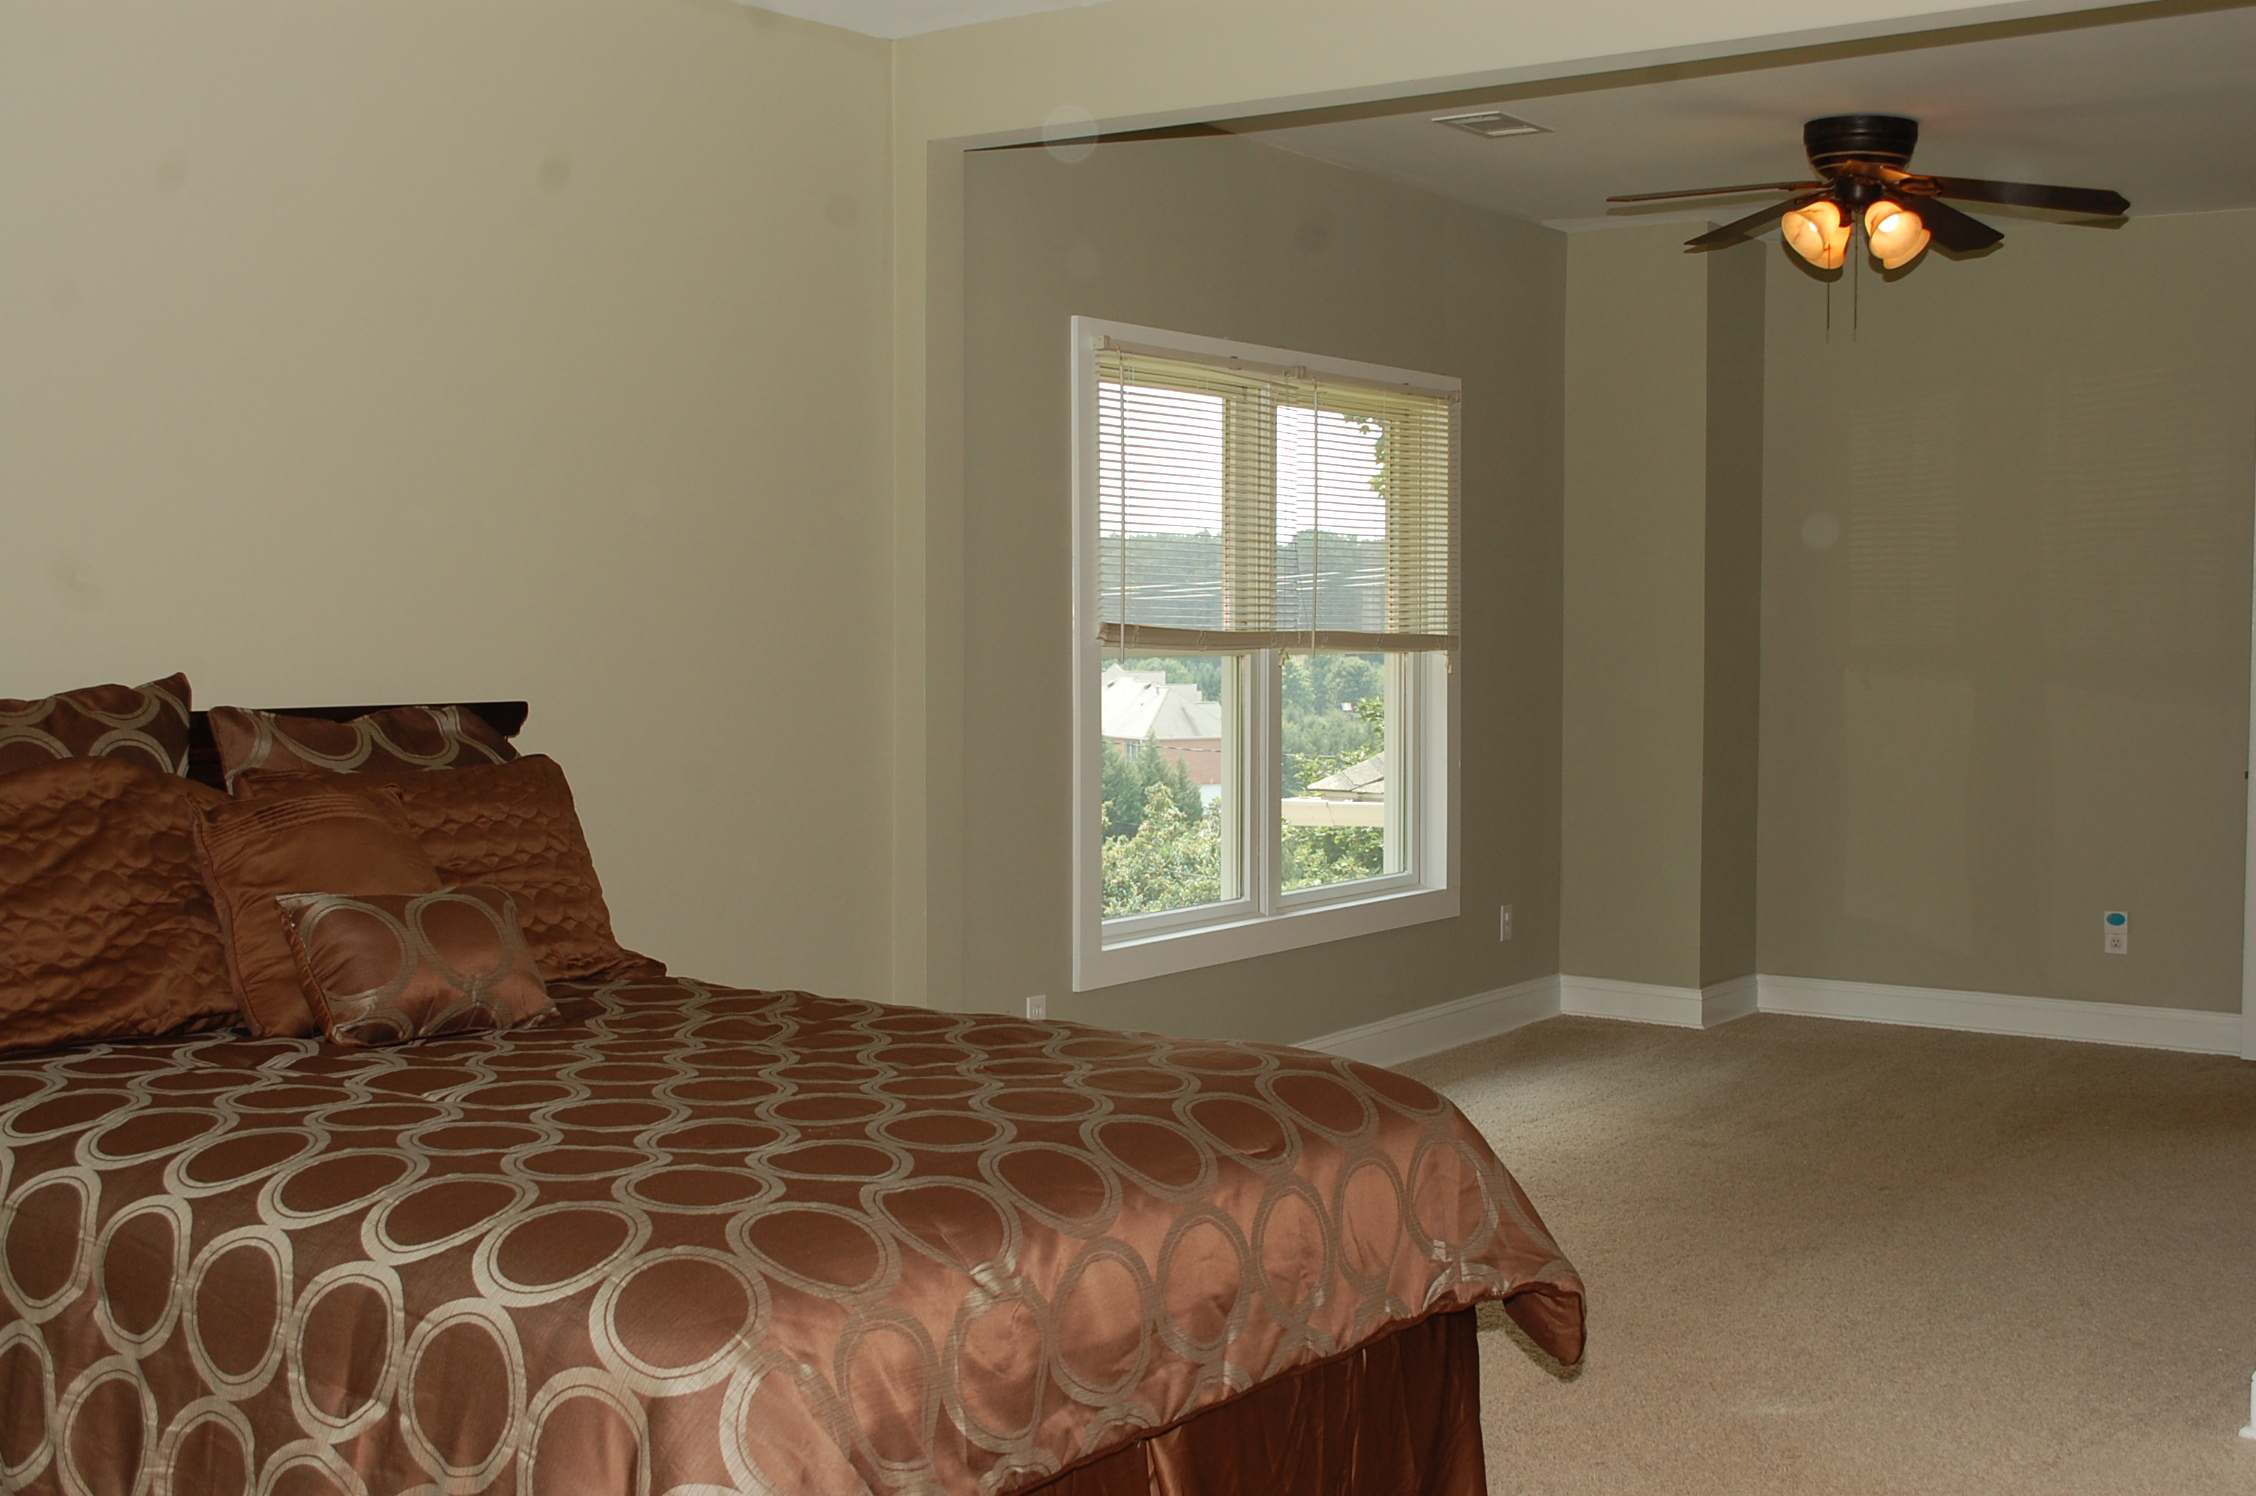 Staged Master Bedroom In A Vacant Home The Welcome Home Interior Design Solutions Llc